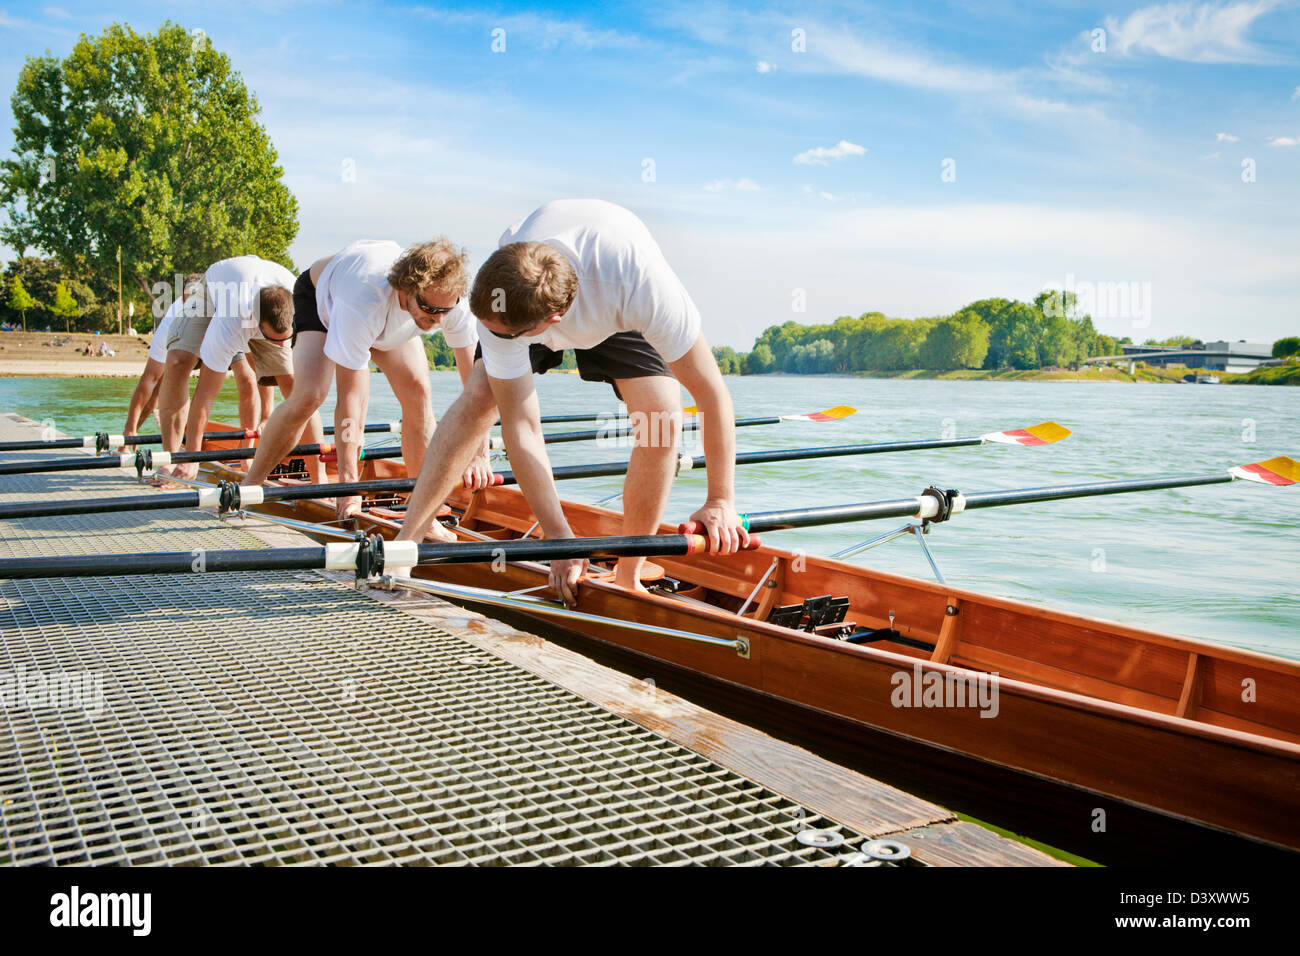 Teamwork Concept of Men Rowing Team Mounting Boat in Coordination - Stock Image